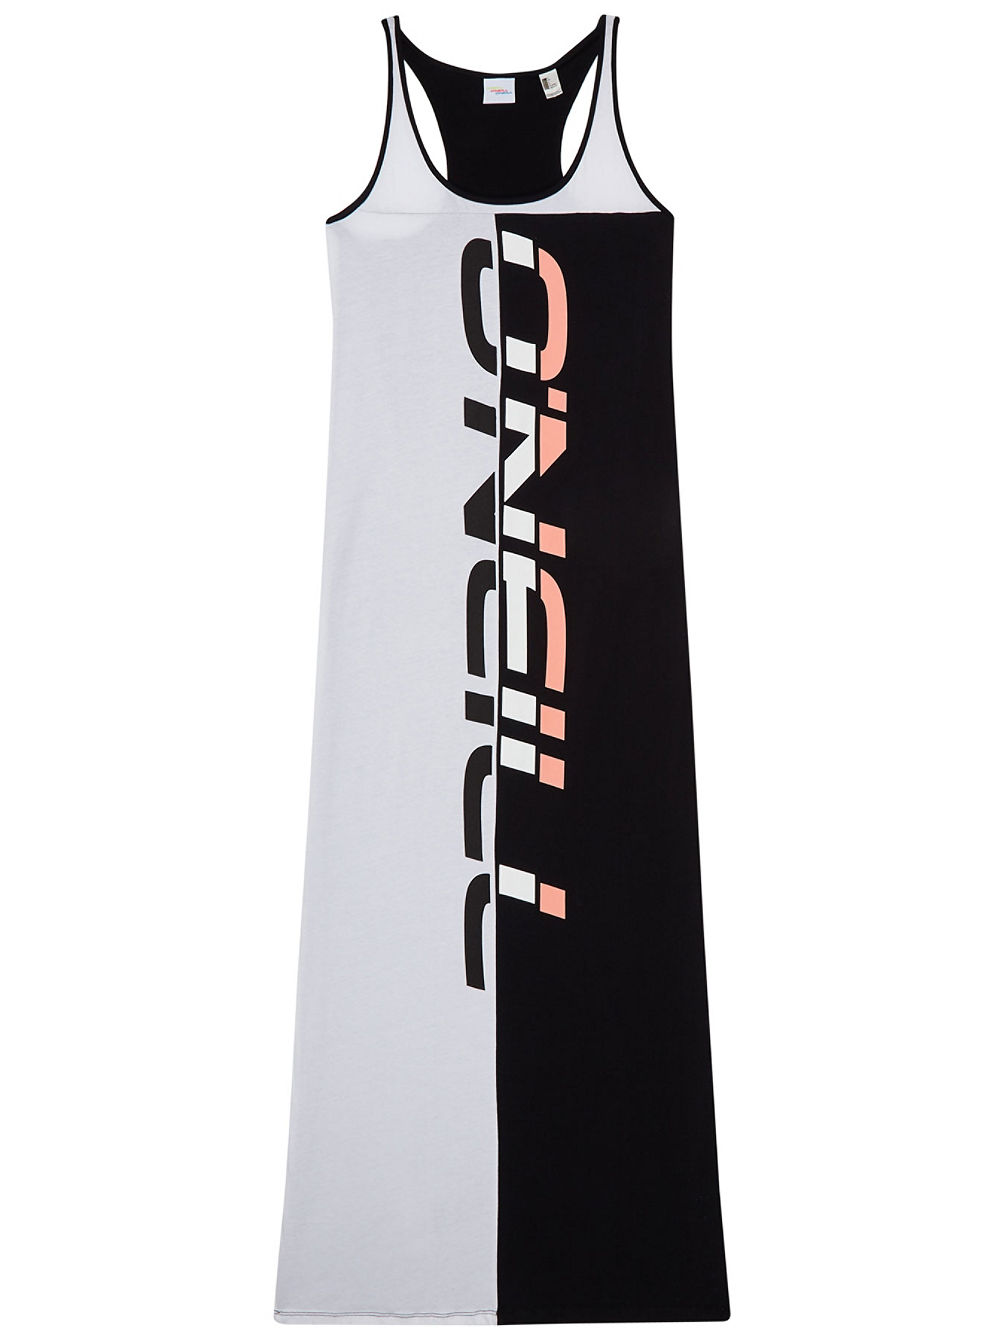 7c330a17906 Buy O Neill Racerback Jersey Dress online at Blue Tomato